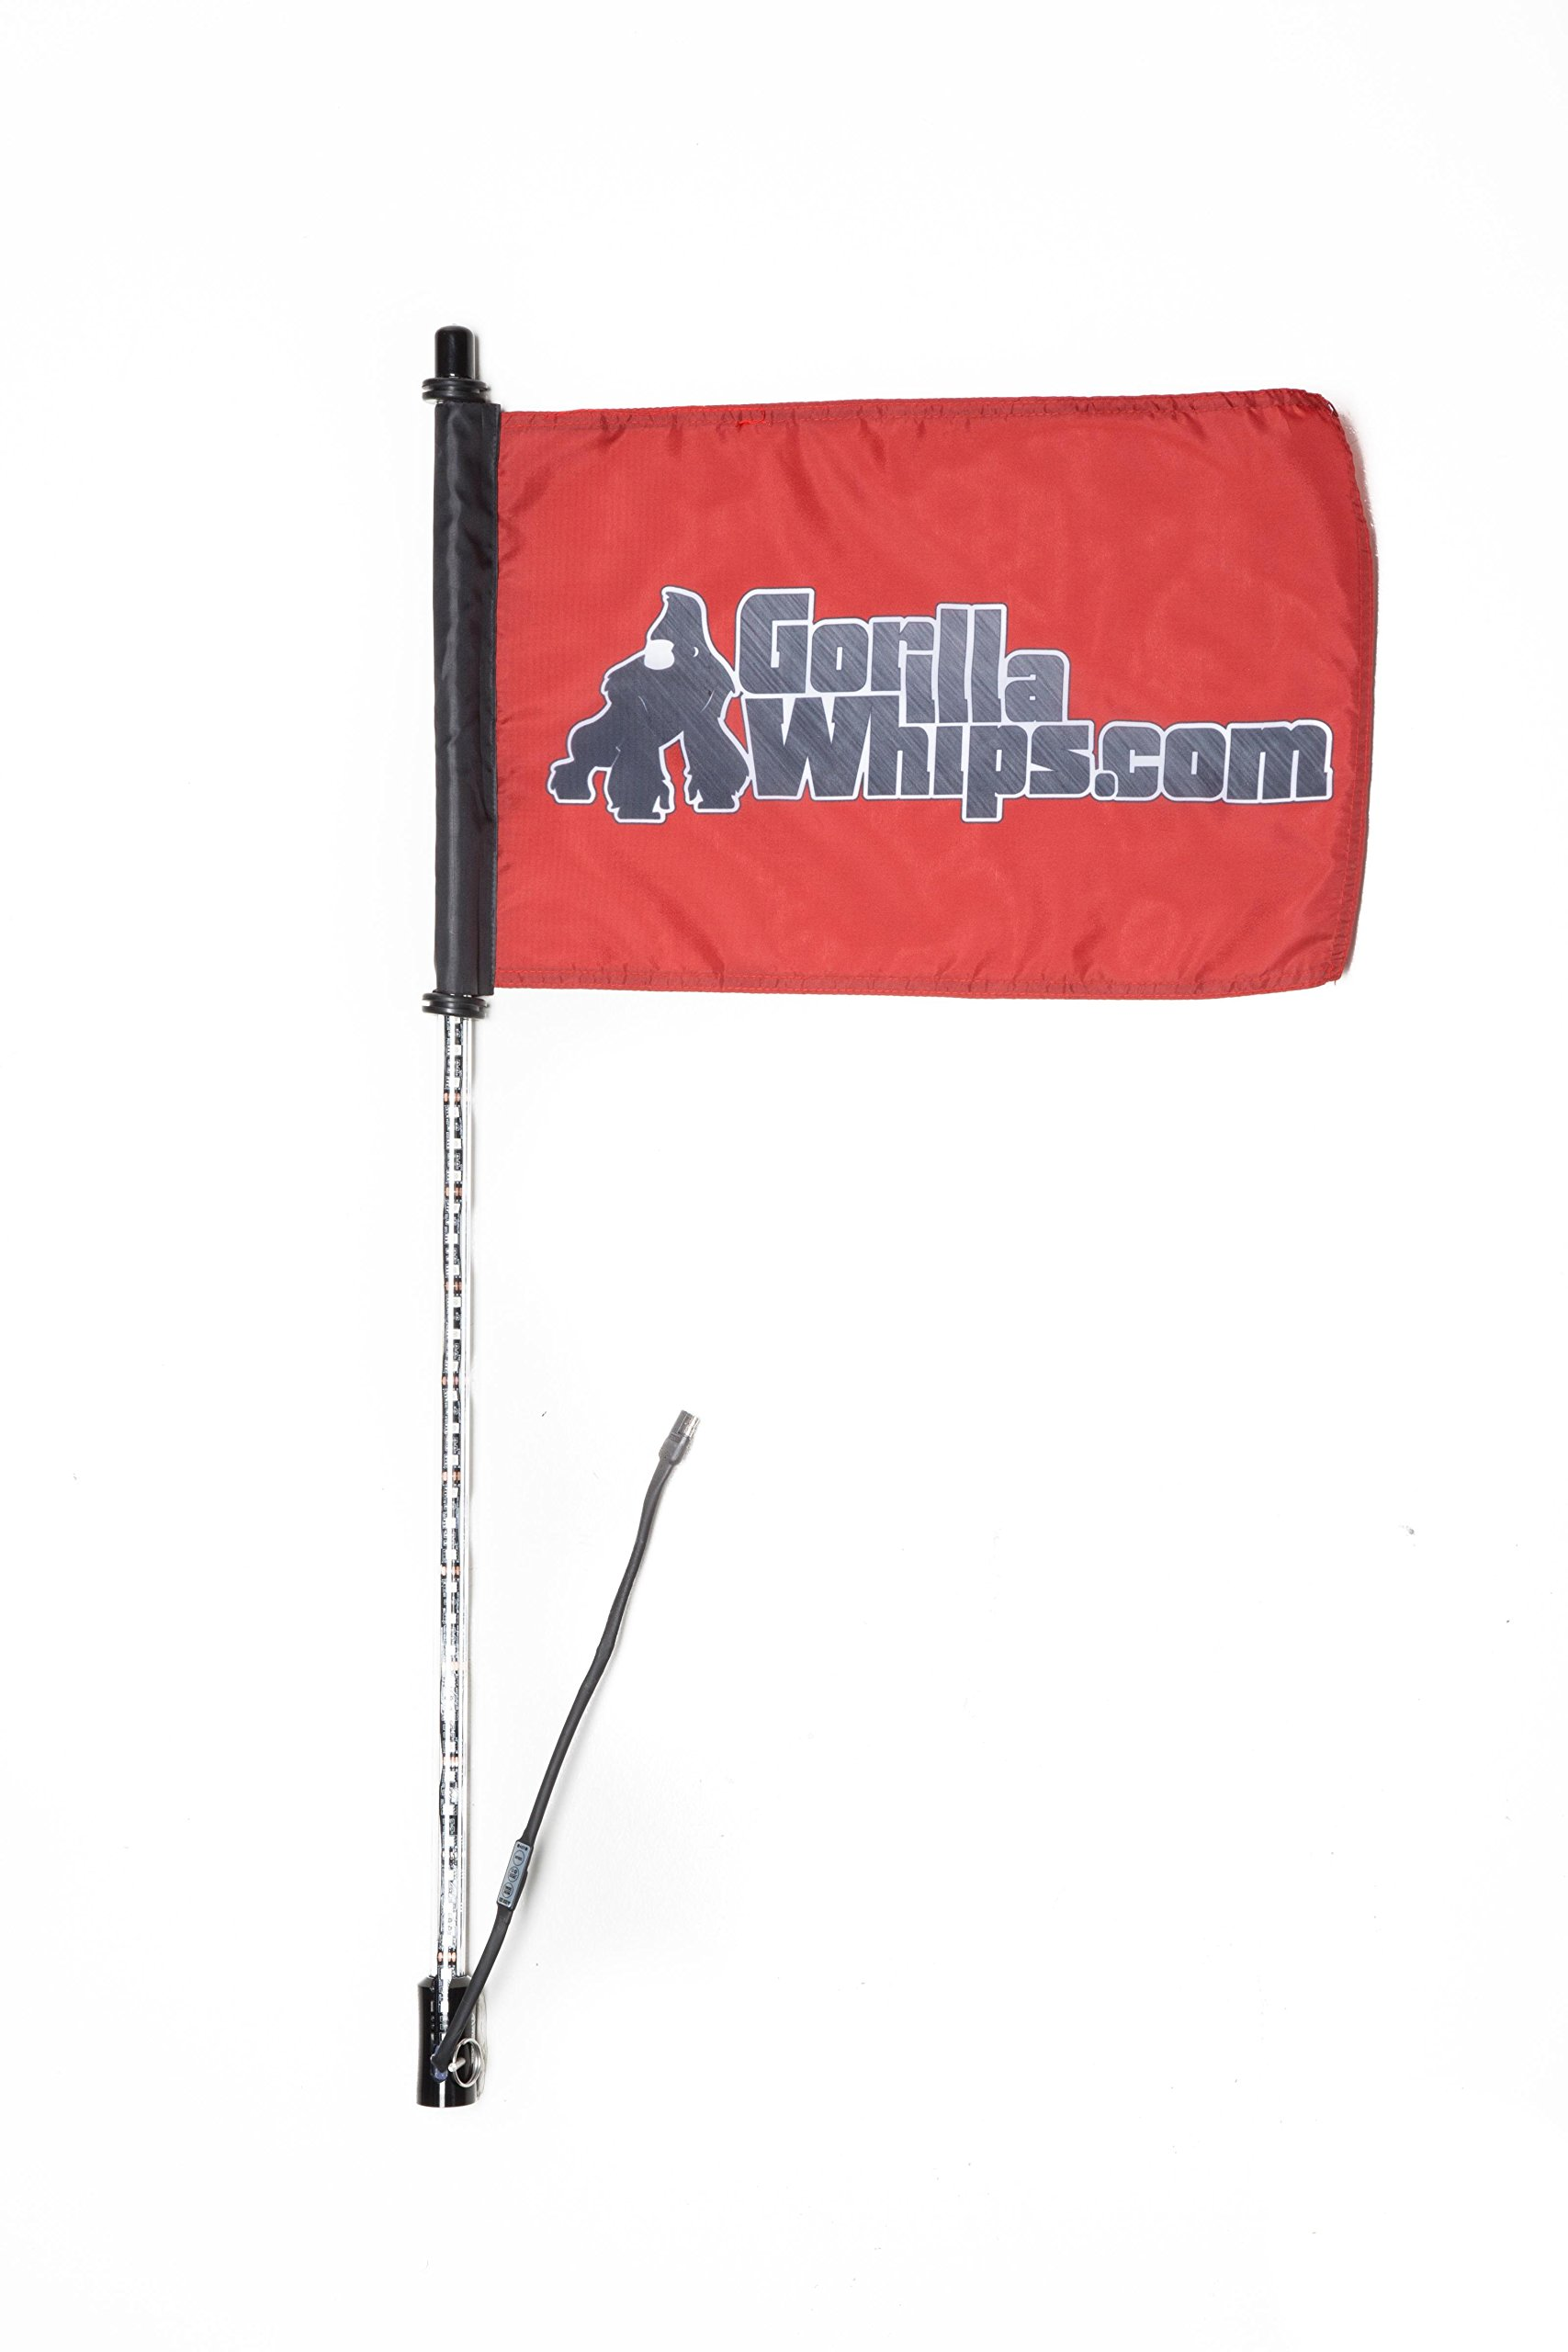 Gorilla Whips - 20 color 3' LED XTREME WHIP with red Safety Flag for atv, buggy, dunes, utv